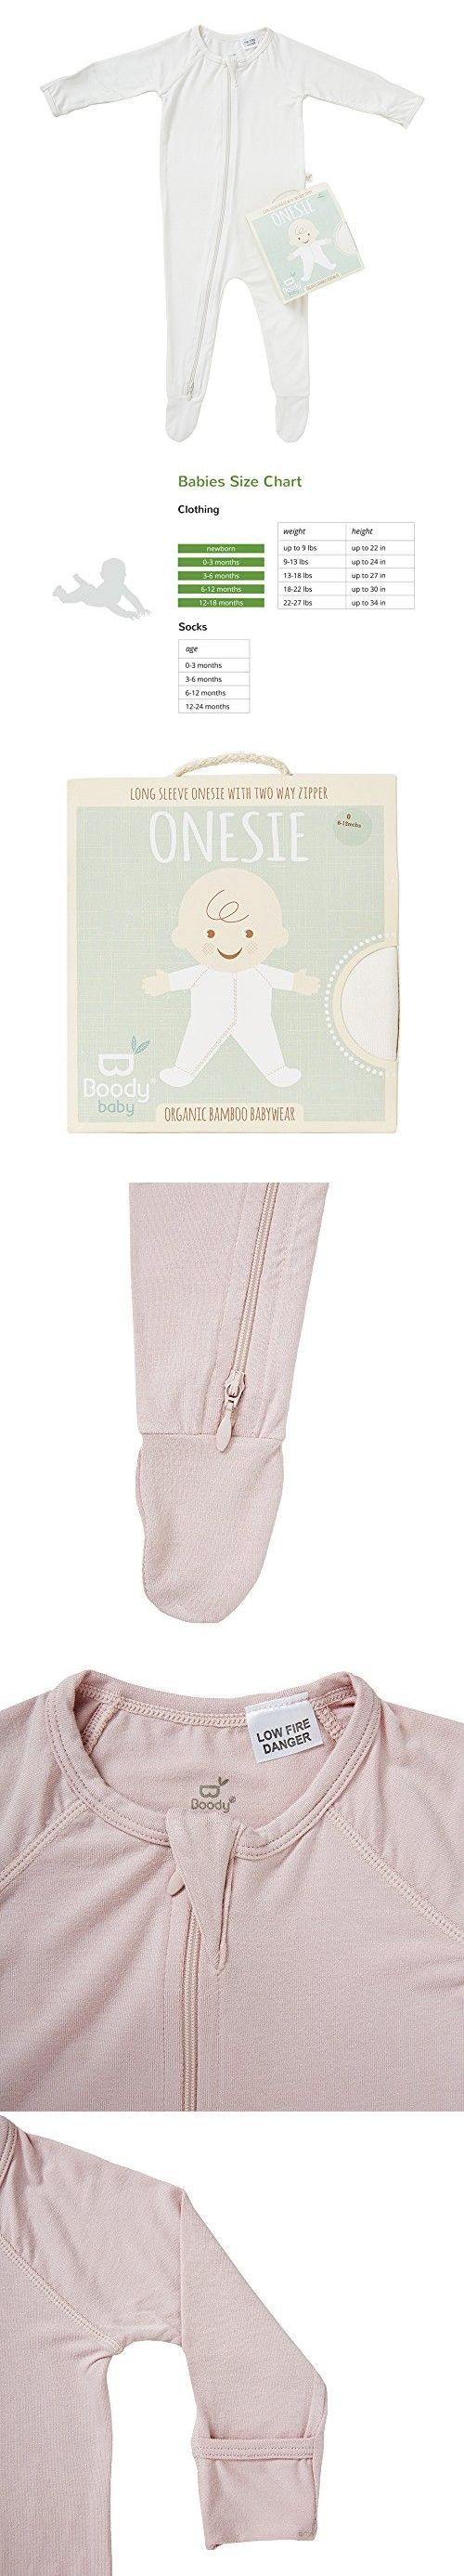 Boody Body Baby EcoWear Long Sleeve Onesie - Soft Blanket Sleeper with Built  In Mittens made from Natural Organic Bamboo - Soft Breathable Eco Fashion  for ... bd23d6eca